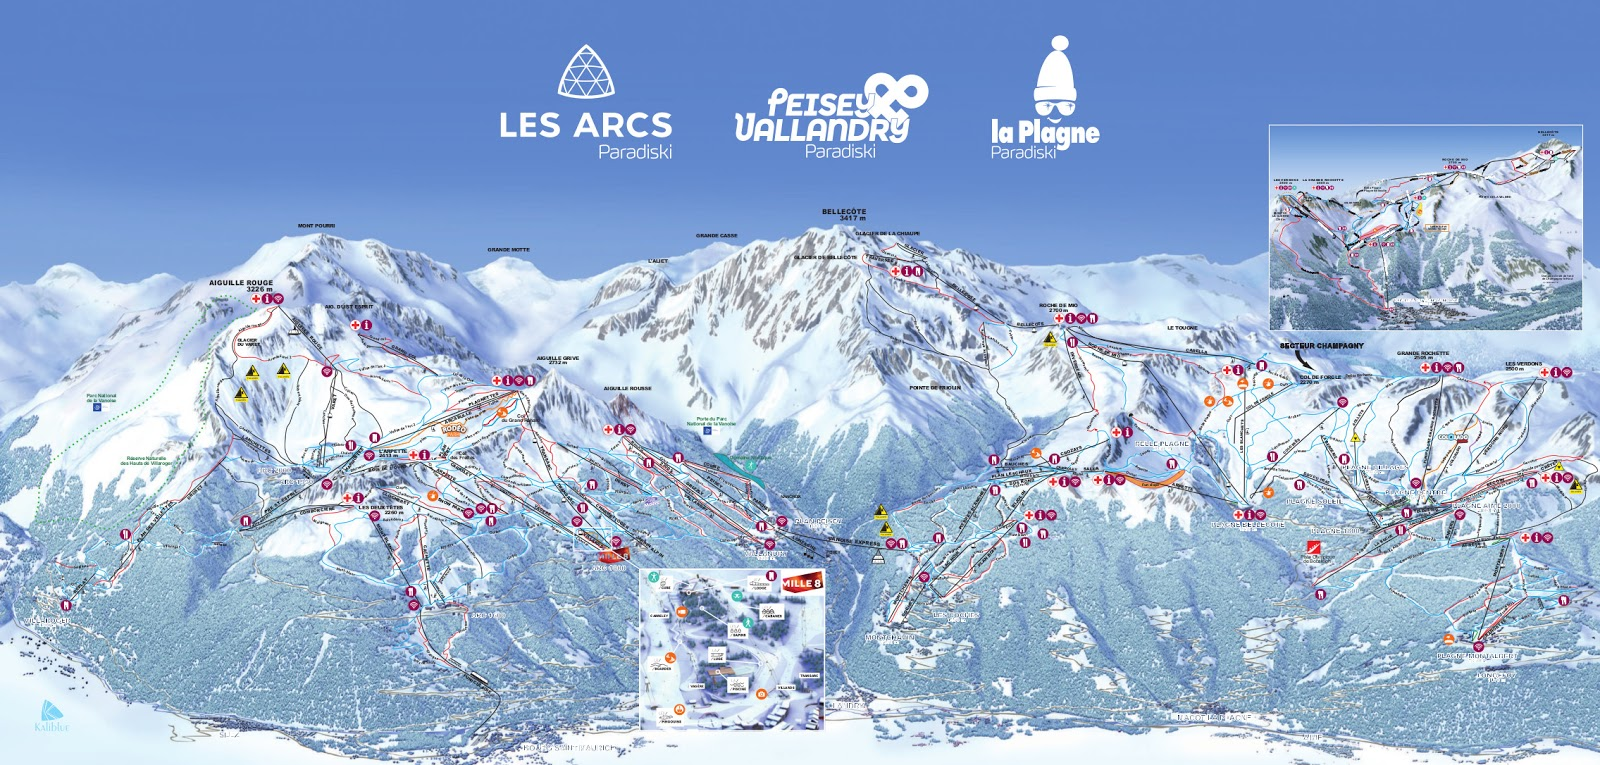 Map of Paradiski. Source: winter.la-plagne.com.